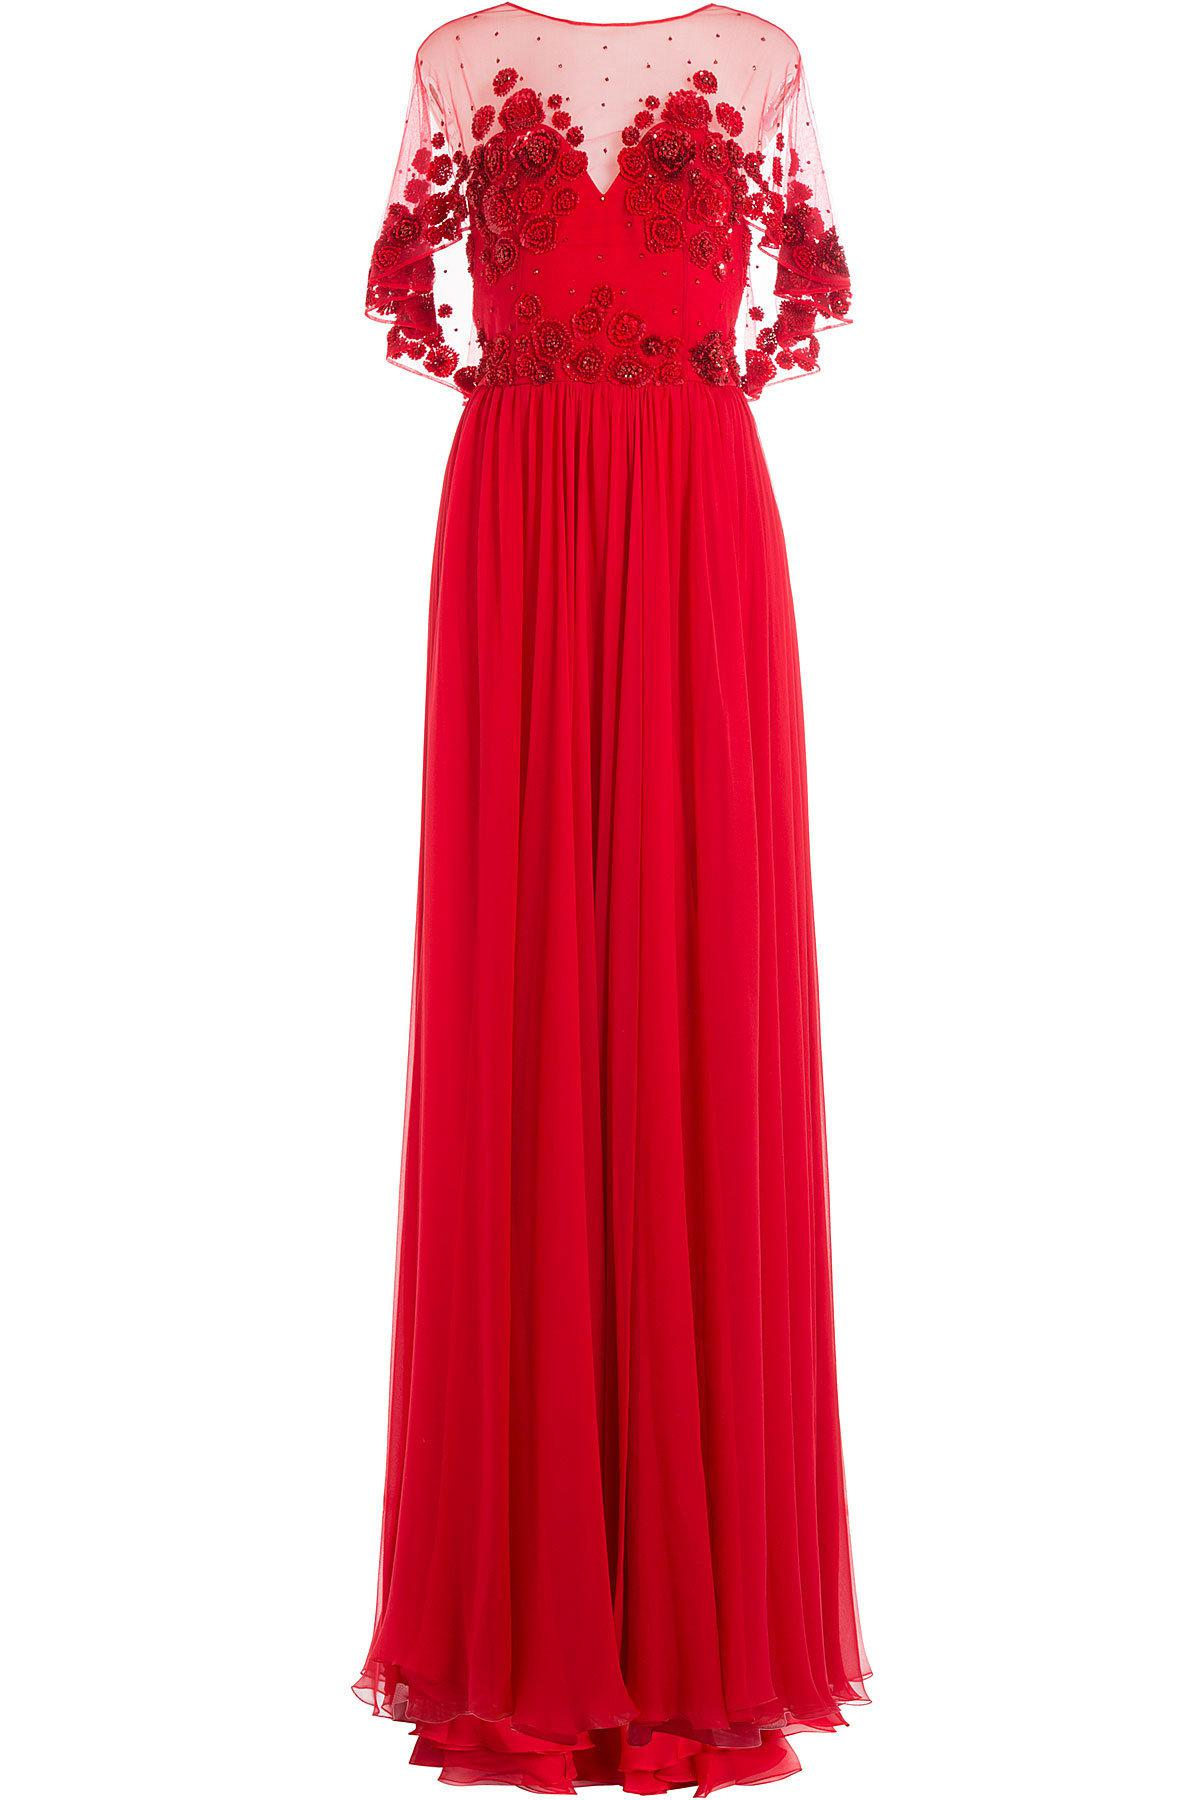 Zuhair Murad Embellished Evening Gown in Red - Lyst